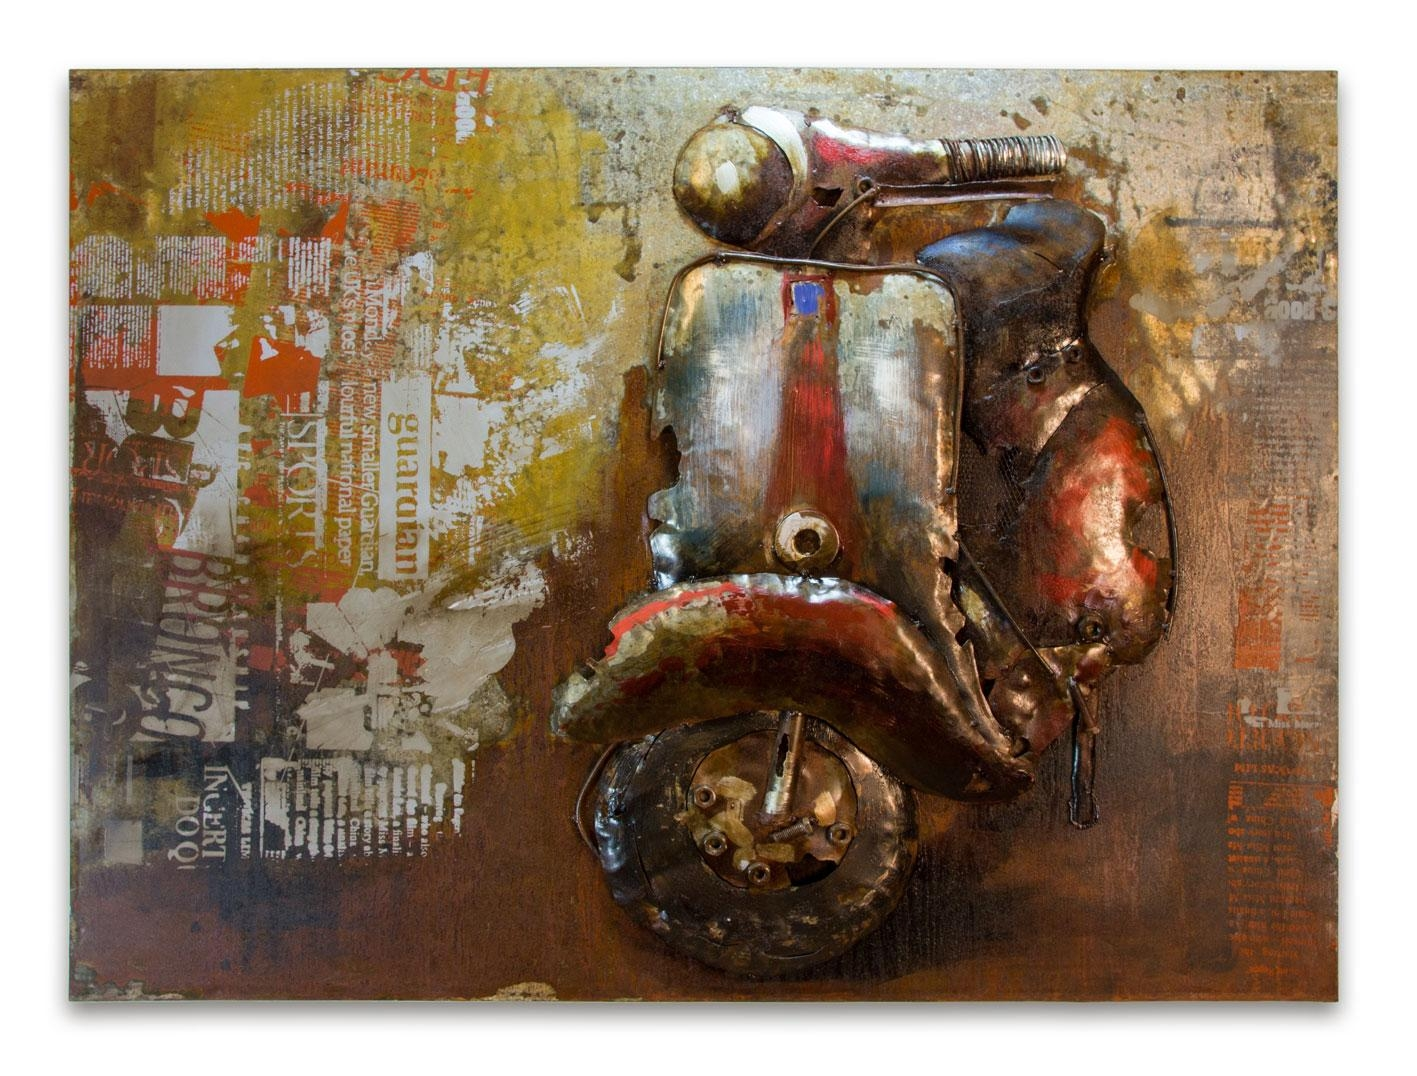 Wall Art Decor: Scooter Crafted Italian Metal Wall Art Handmade Inside Italian Silver Wall Art (Image 19 of 20)